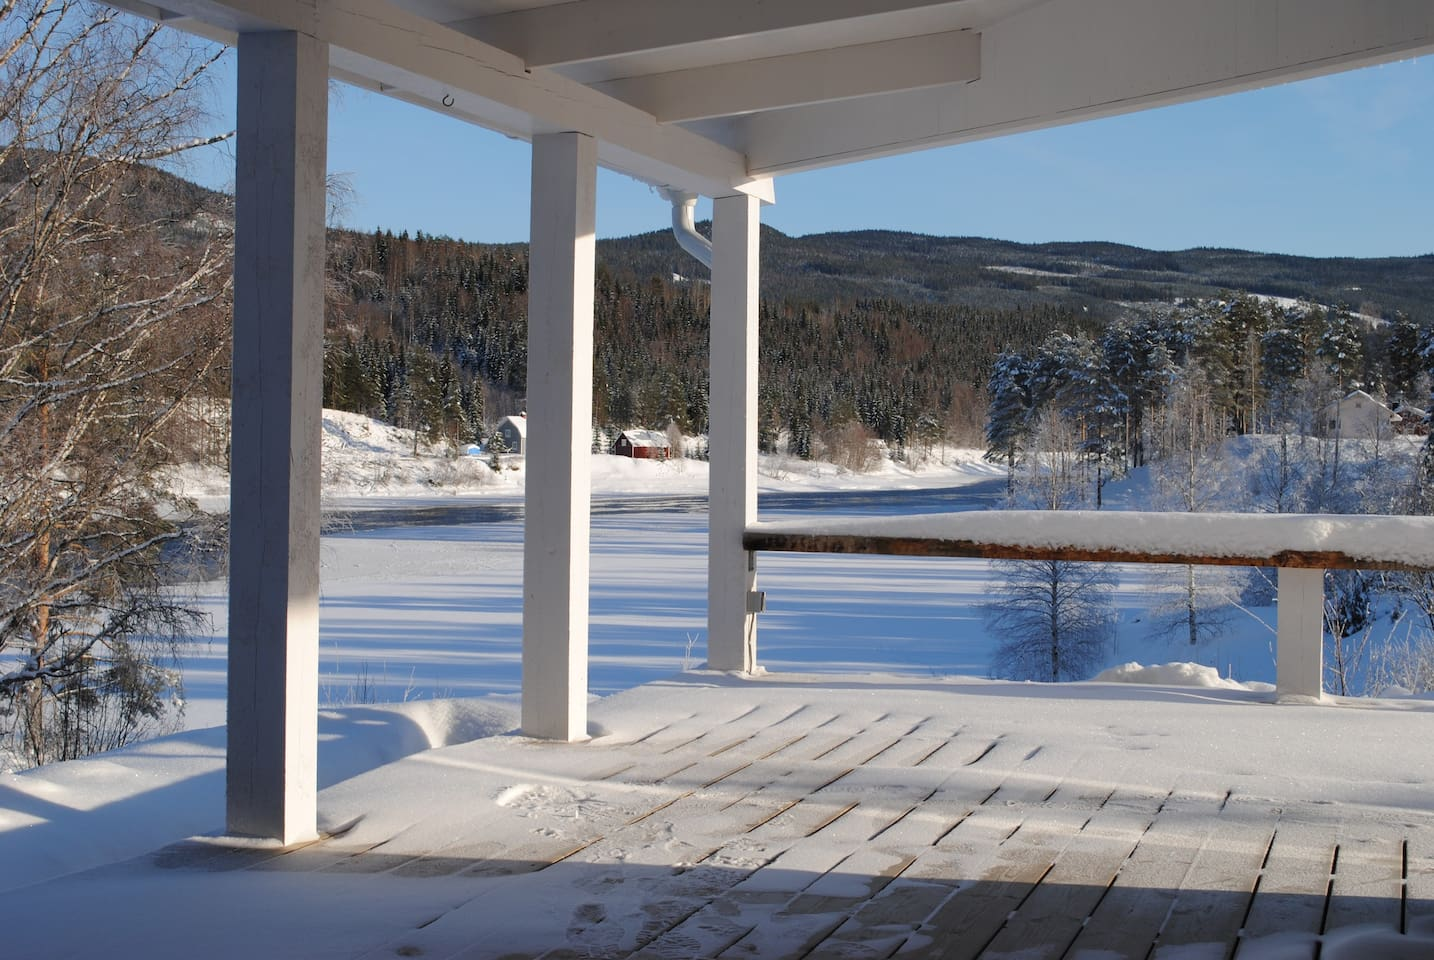 This is the view from the veranda over the river Klaralven, it can't come any better.